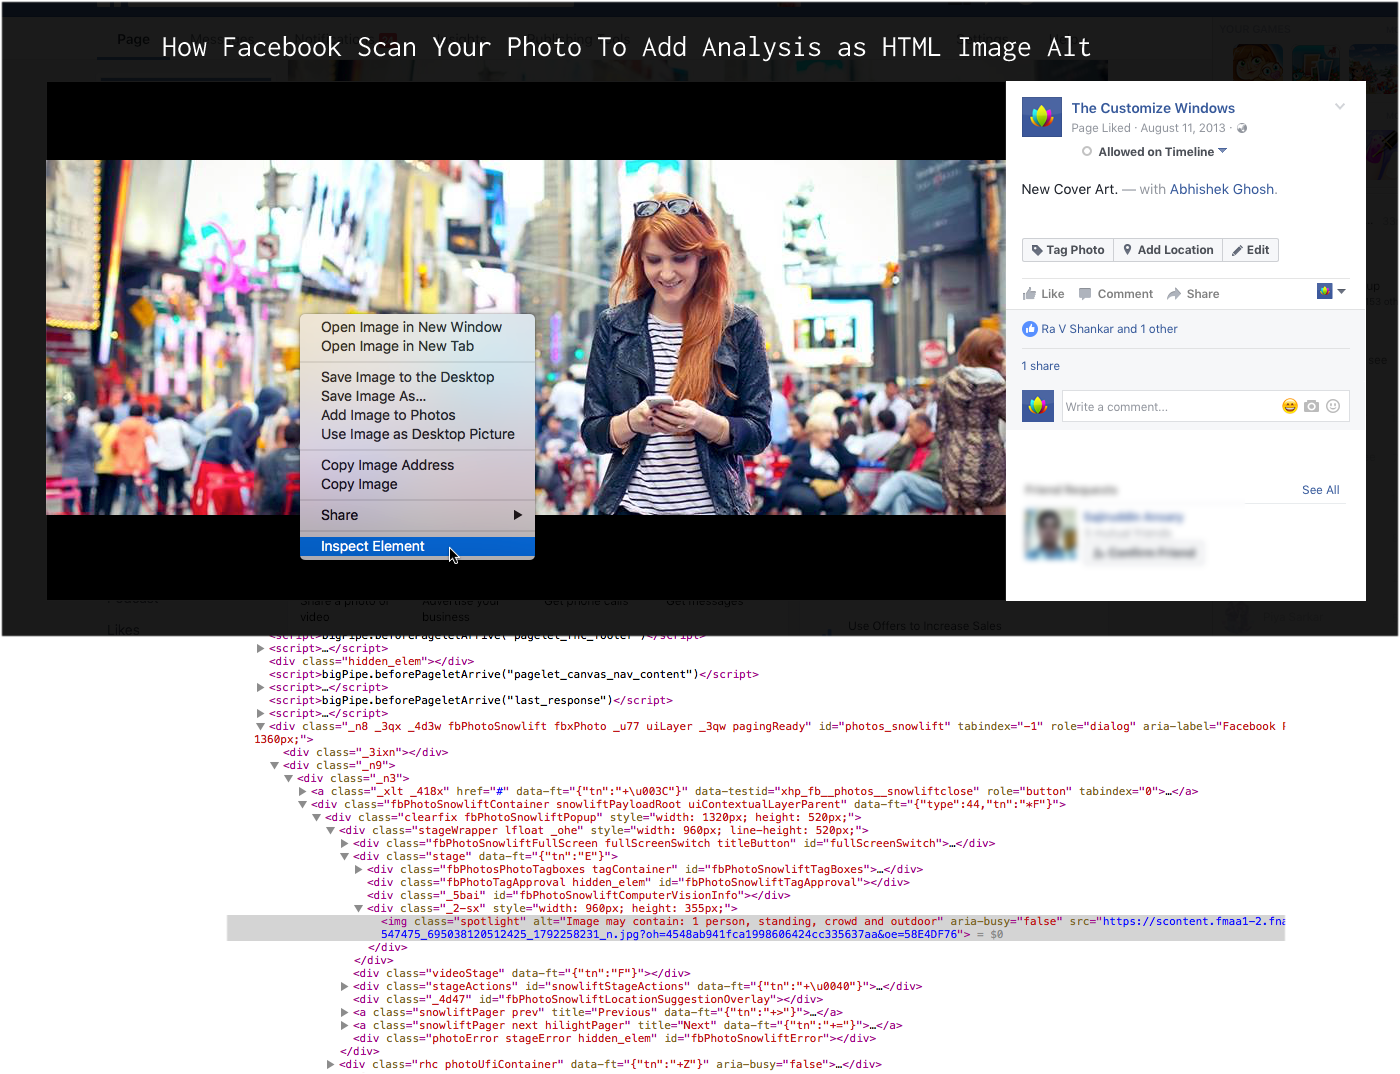 How-Facebook-Scan-Your-Photo-To-Add-Analysis-as-HTML-Image-Alt